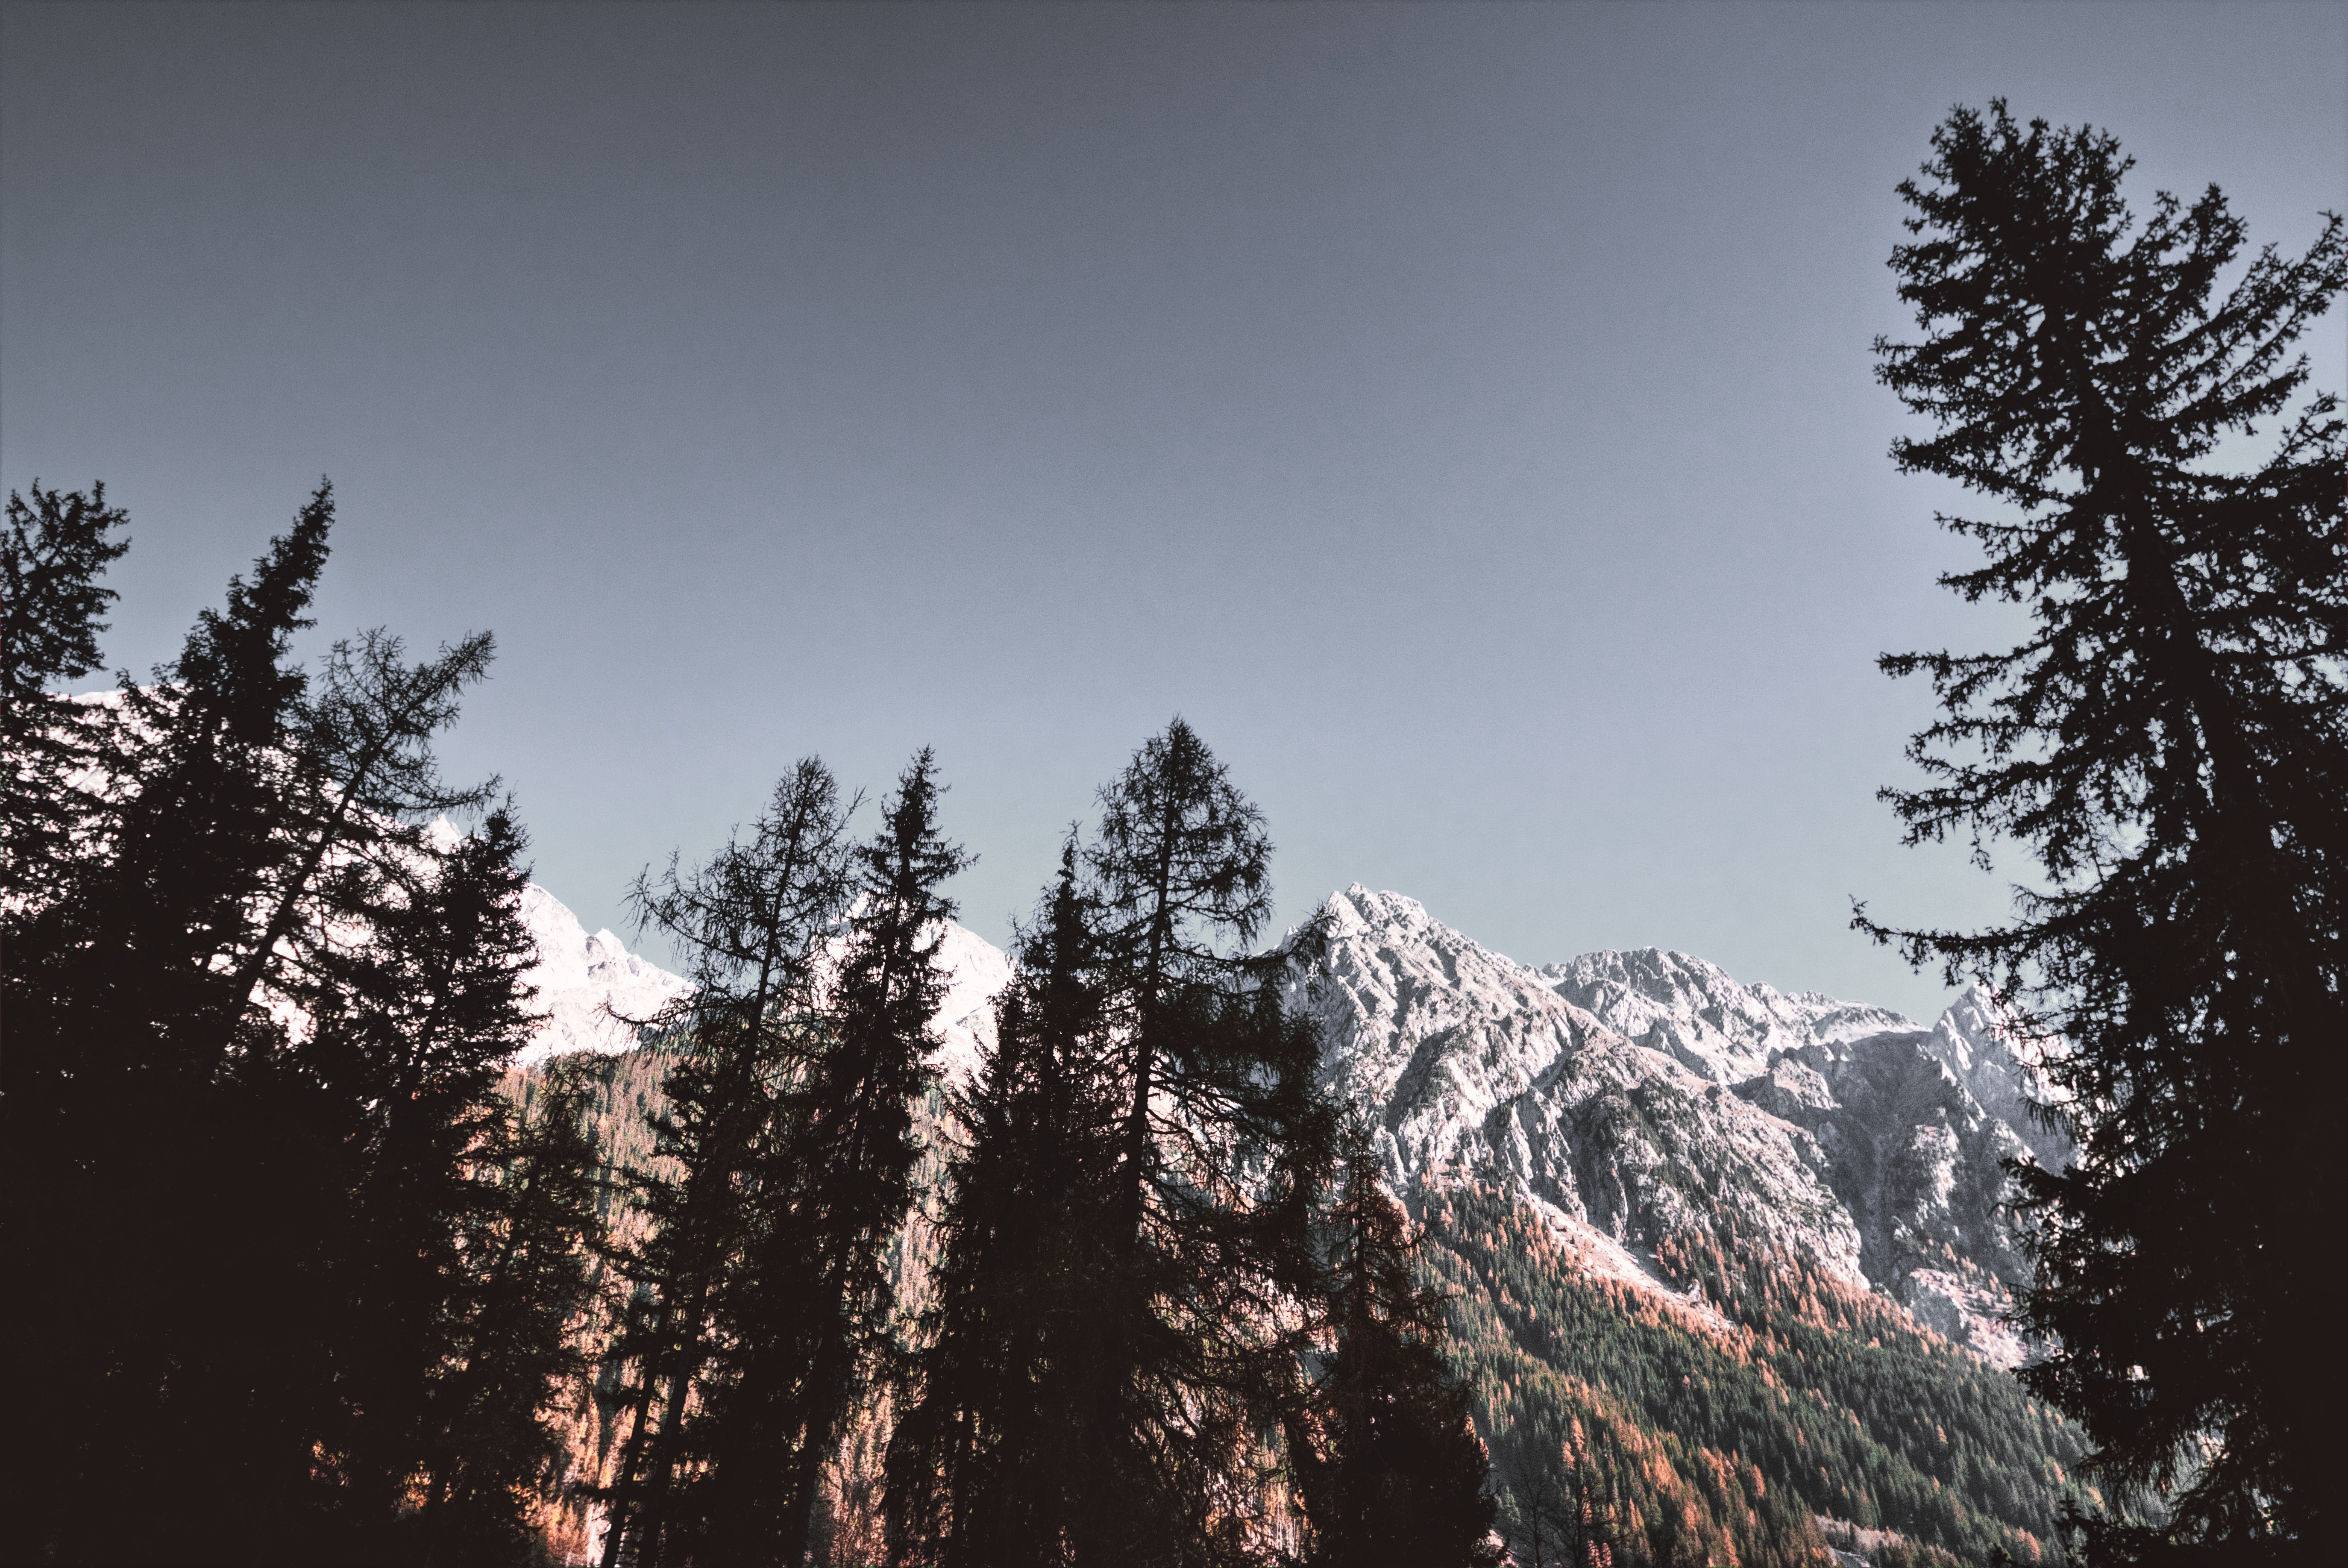 Snow Covered Mountains, Adventure, Low angle shot, Winter, Trees, HQ Photo